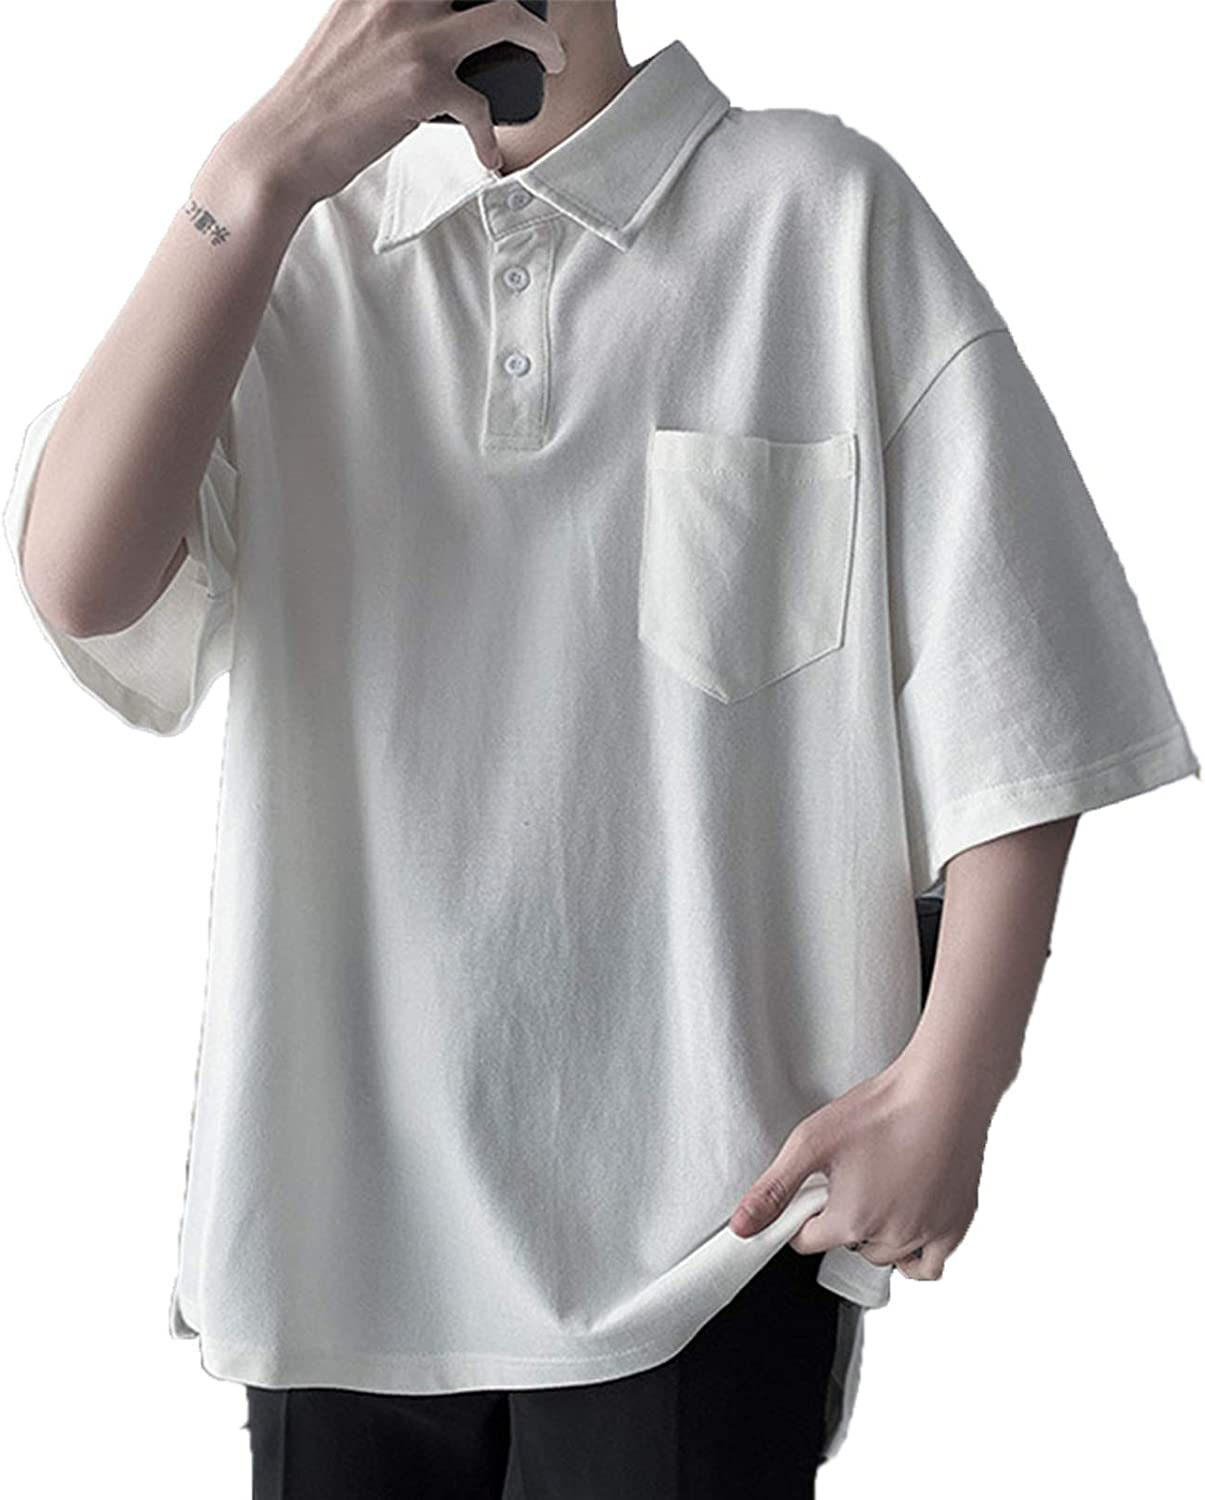 LHQ-HQ Men's Polo Shirt Short-Sleeved Loose Students Max 88% OFF OFFicial mail order T-Shirt A